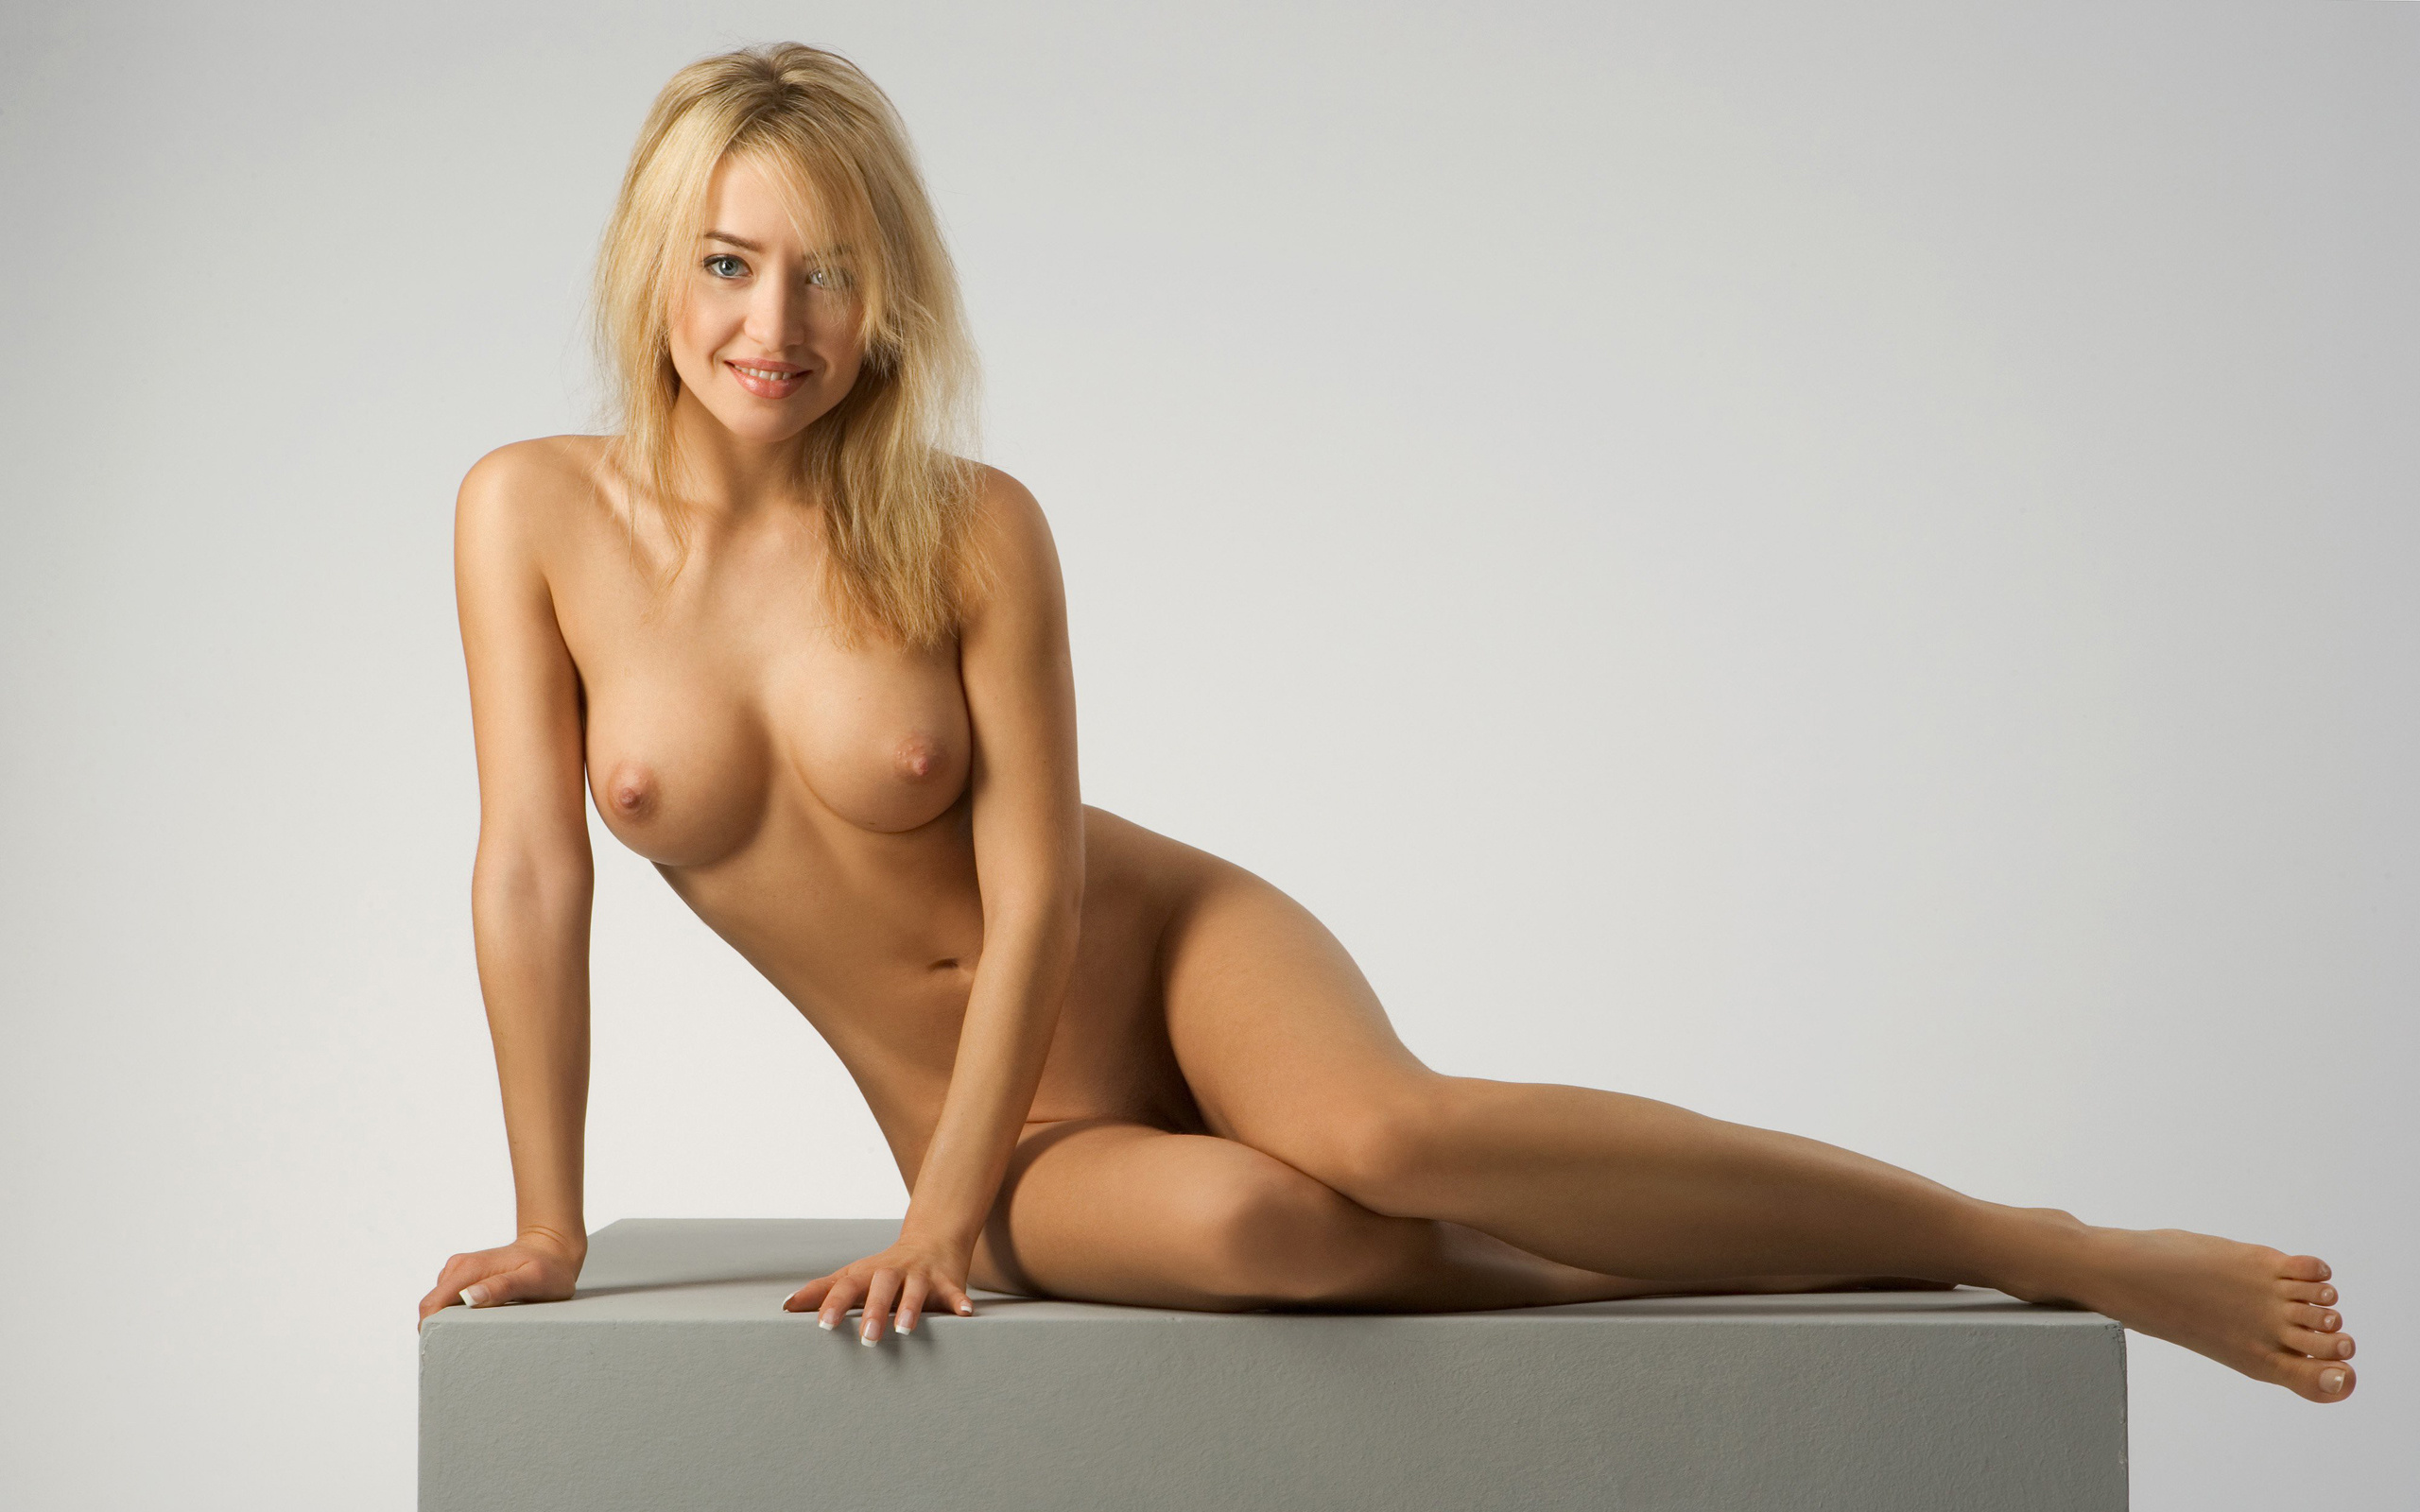 Wallpaper Blonde, Sexy Girl, Sweet, Cute, Nude, Naked, Lia -6097